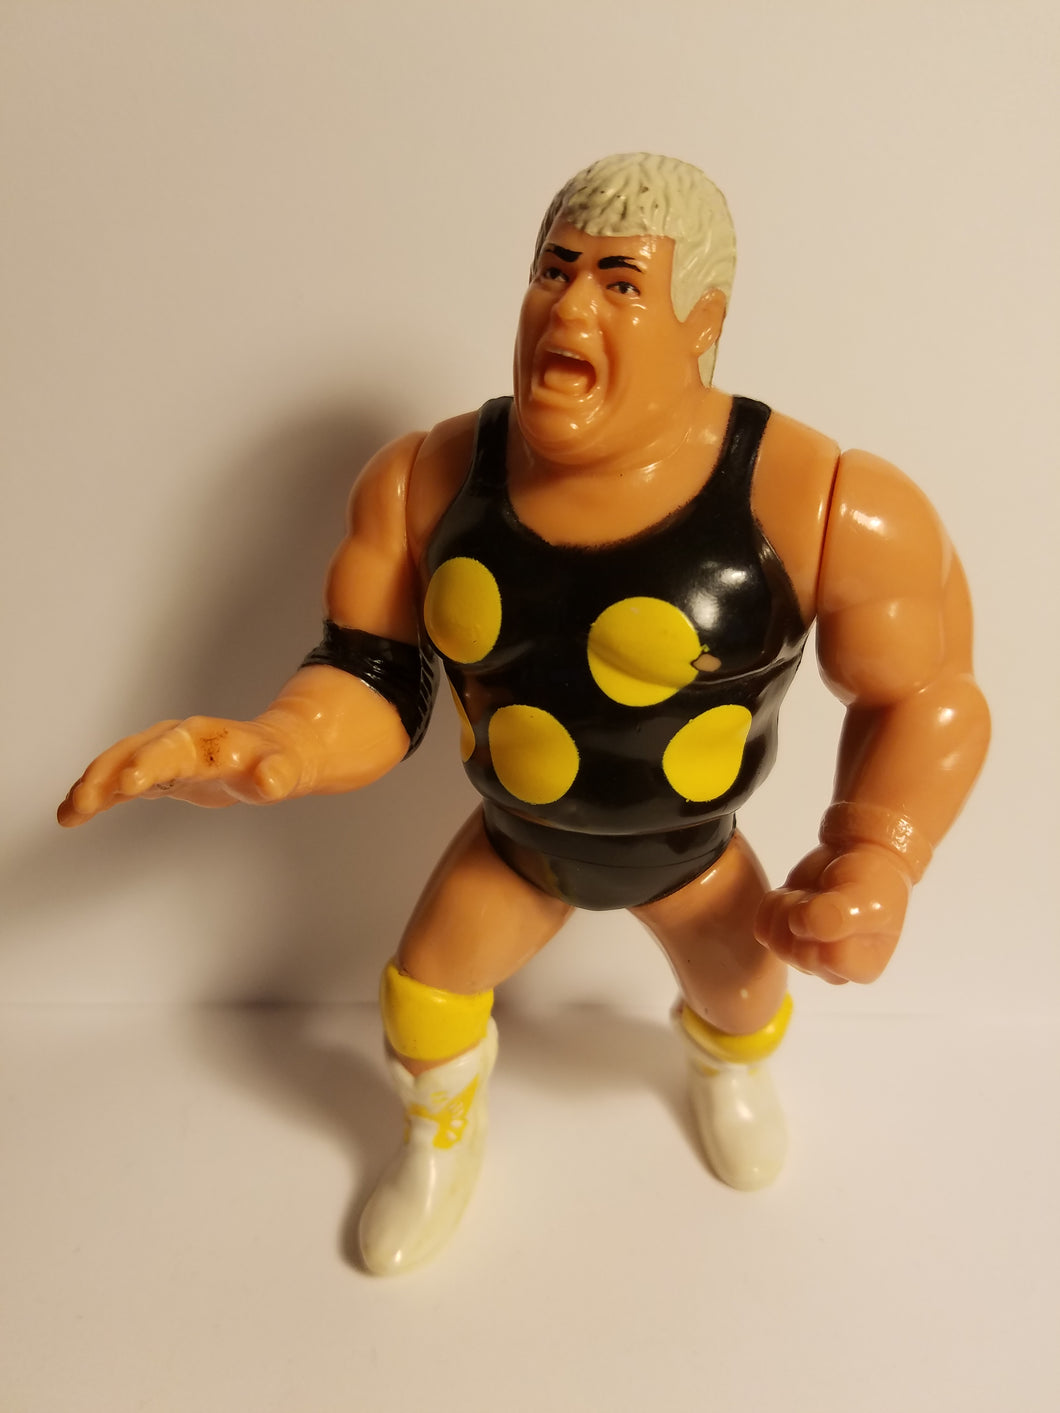 1991 Loose WWF Dusty Rhodes Action Figure - RARE